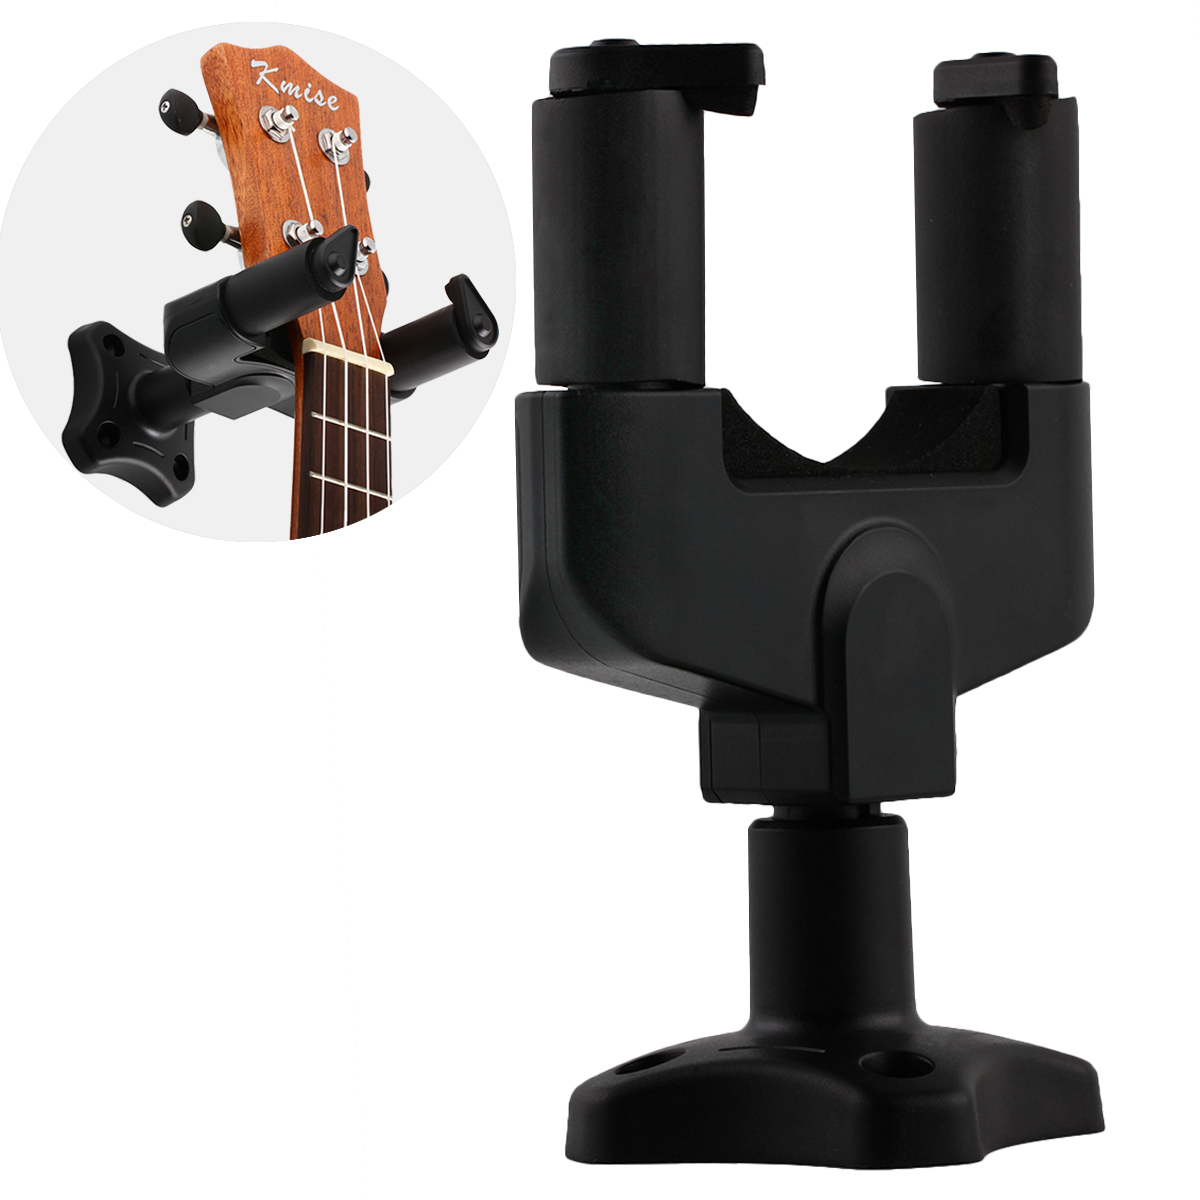 Ukulele Guitar Hanger Hook Wall Mount Stand for Electric Acoustic Classical Guitar Bass Banjo Violin Black Easy Install guitar wall mount hanger hook holder stand display